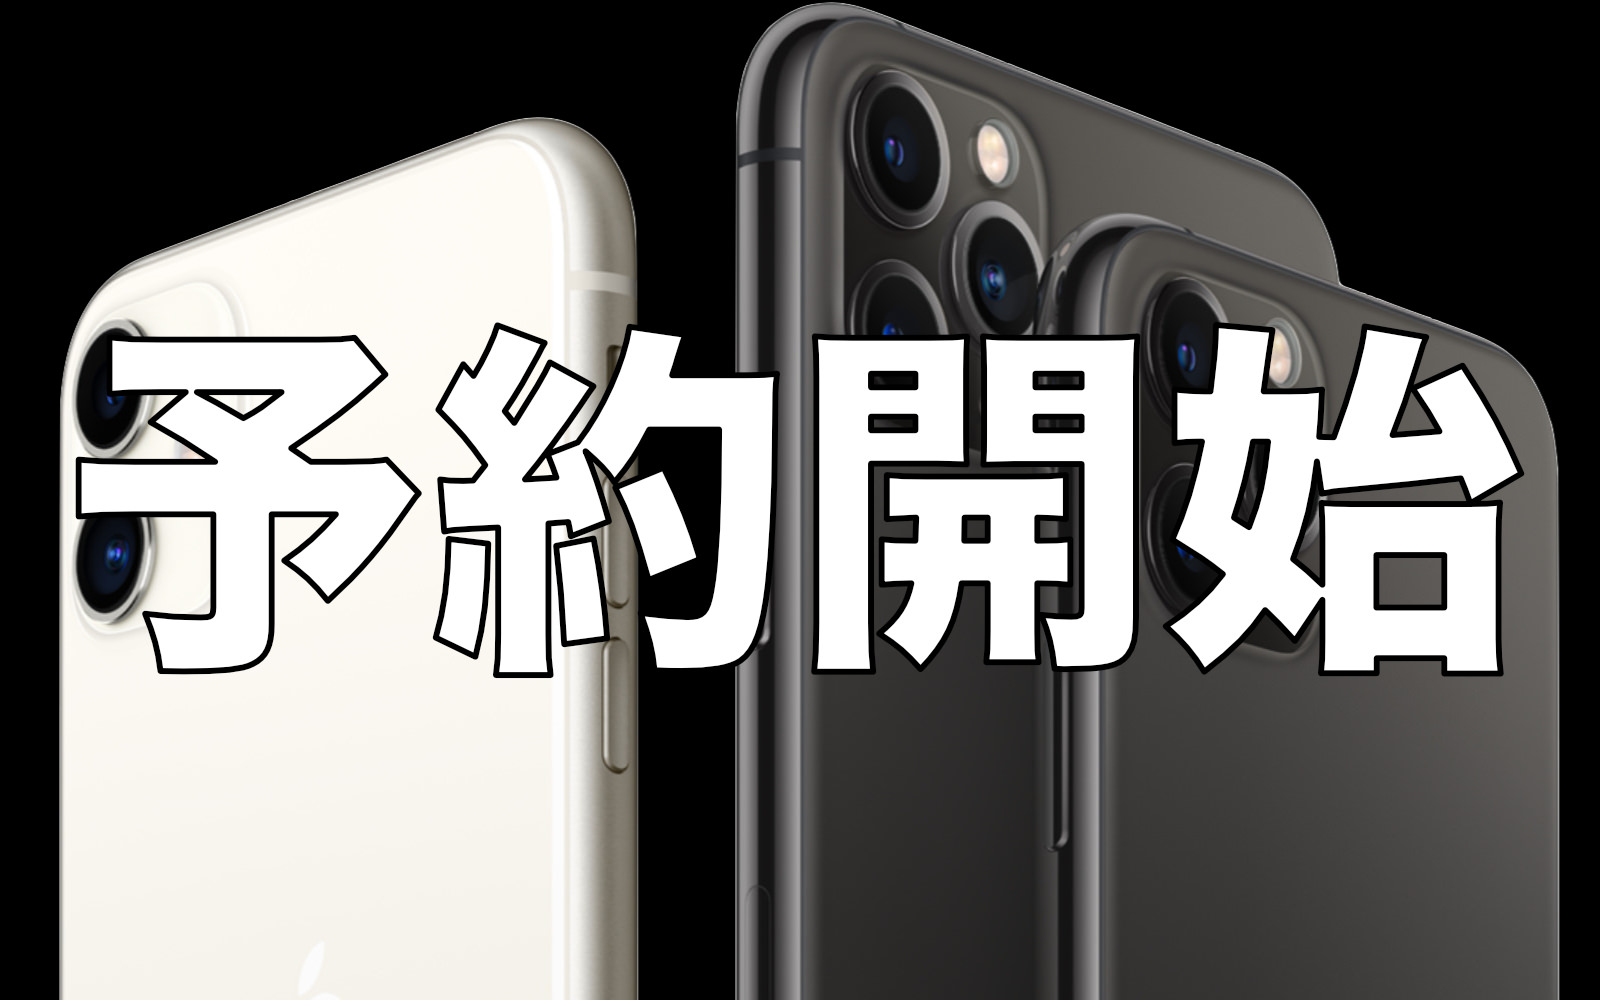 iphone11-series-now-ready-to-order.jpg